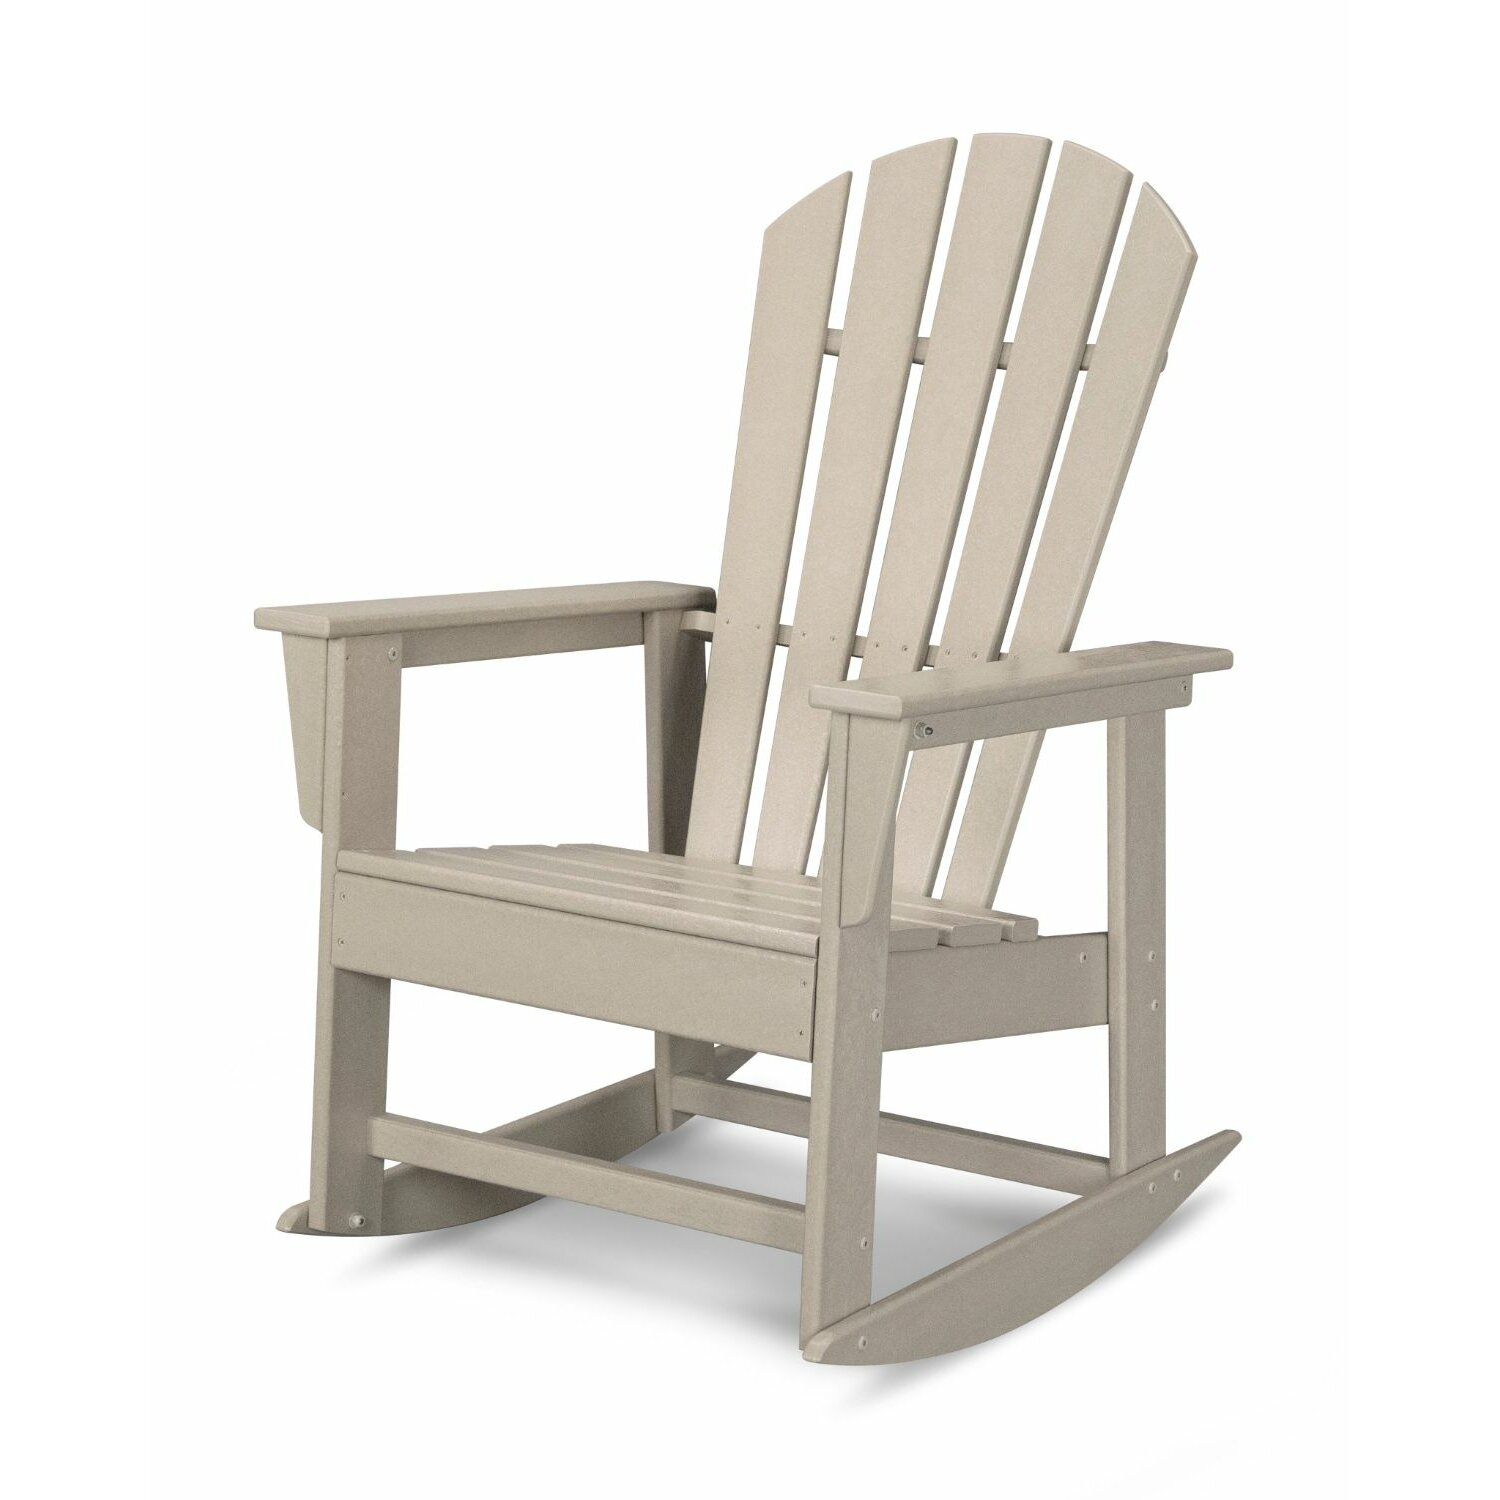 Polywood Outdoor Rocking Chairs Trendy New Ideas Outdoors Rocking